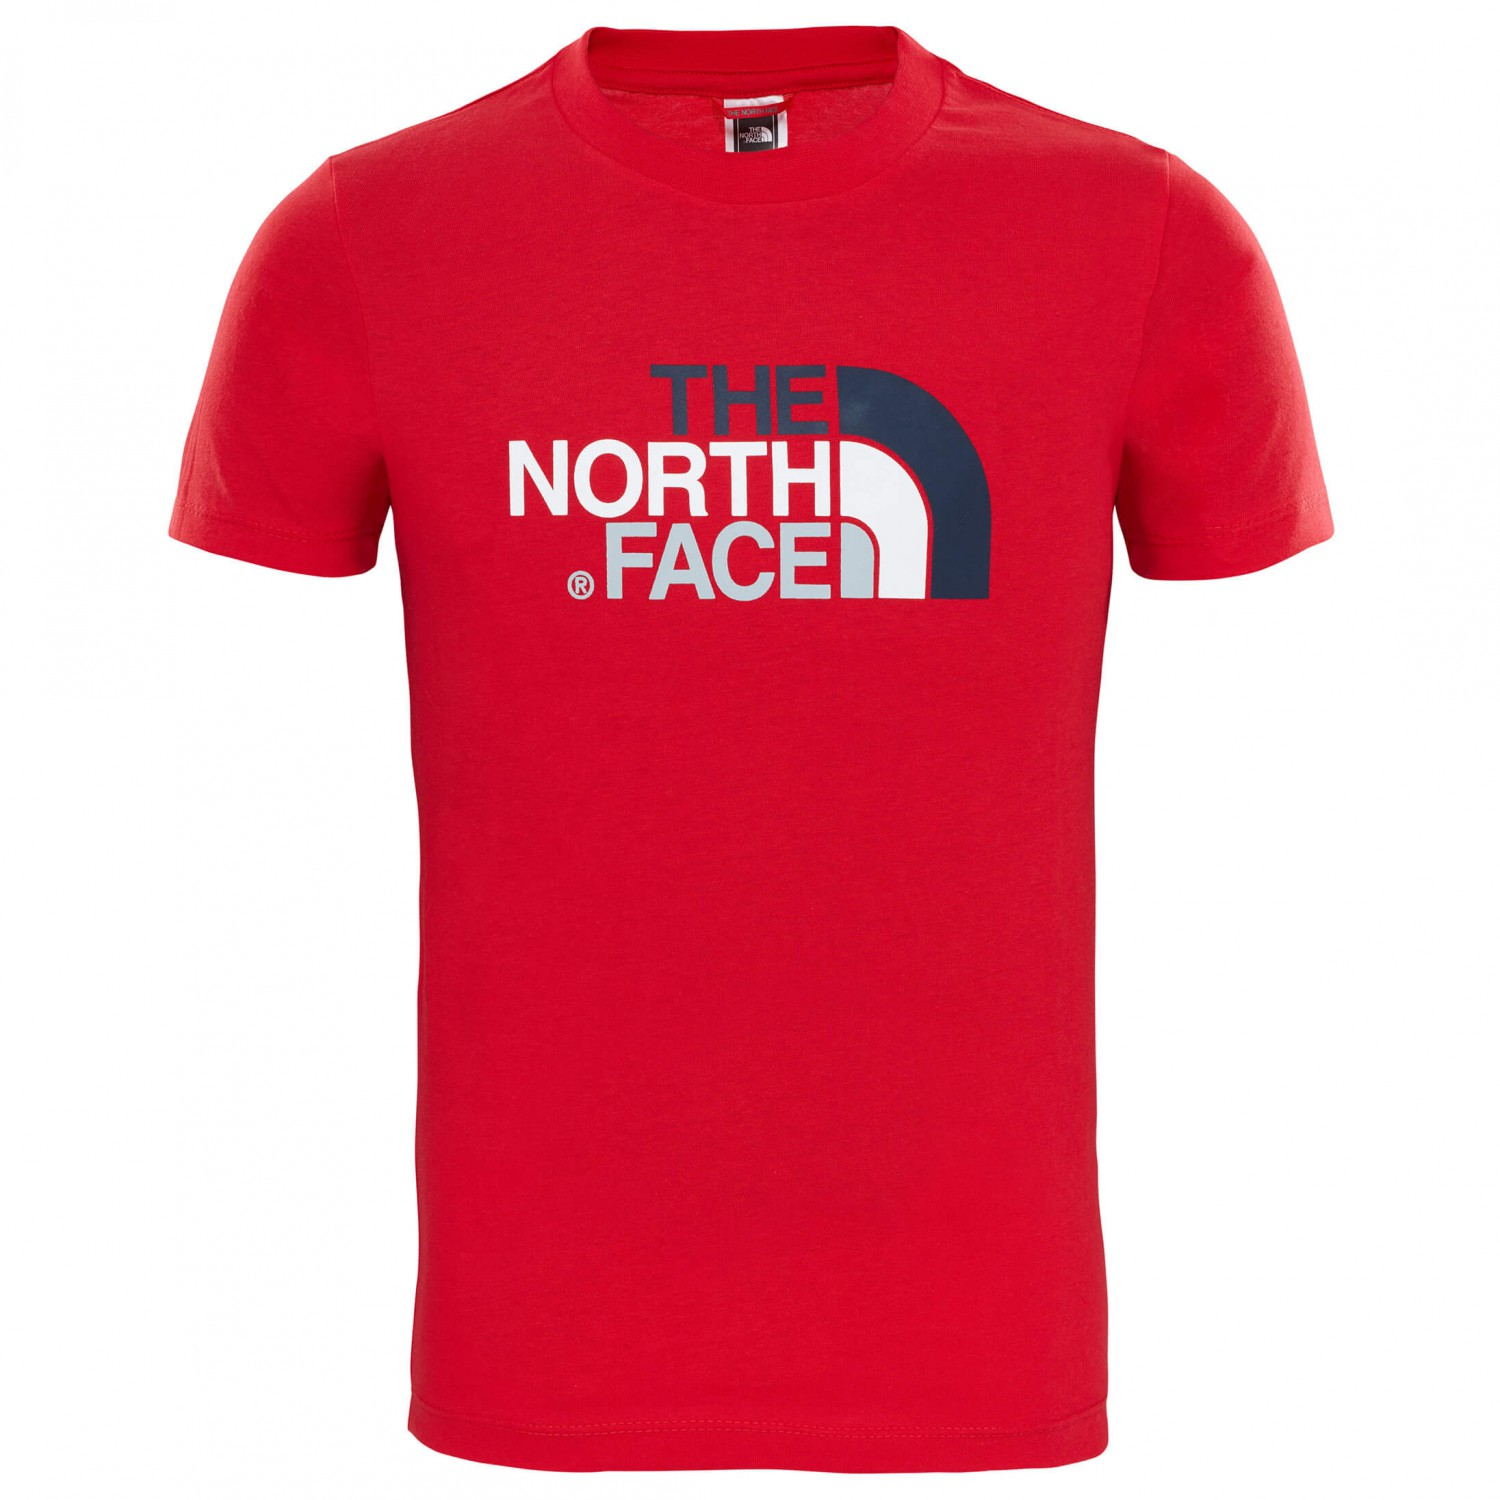 The North Face S/S Easy Tee - T-Shirt Kids | Buy online ...